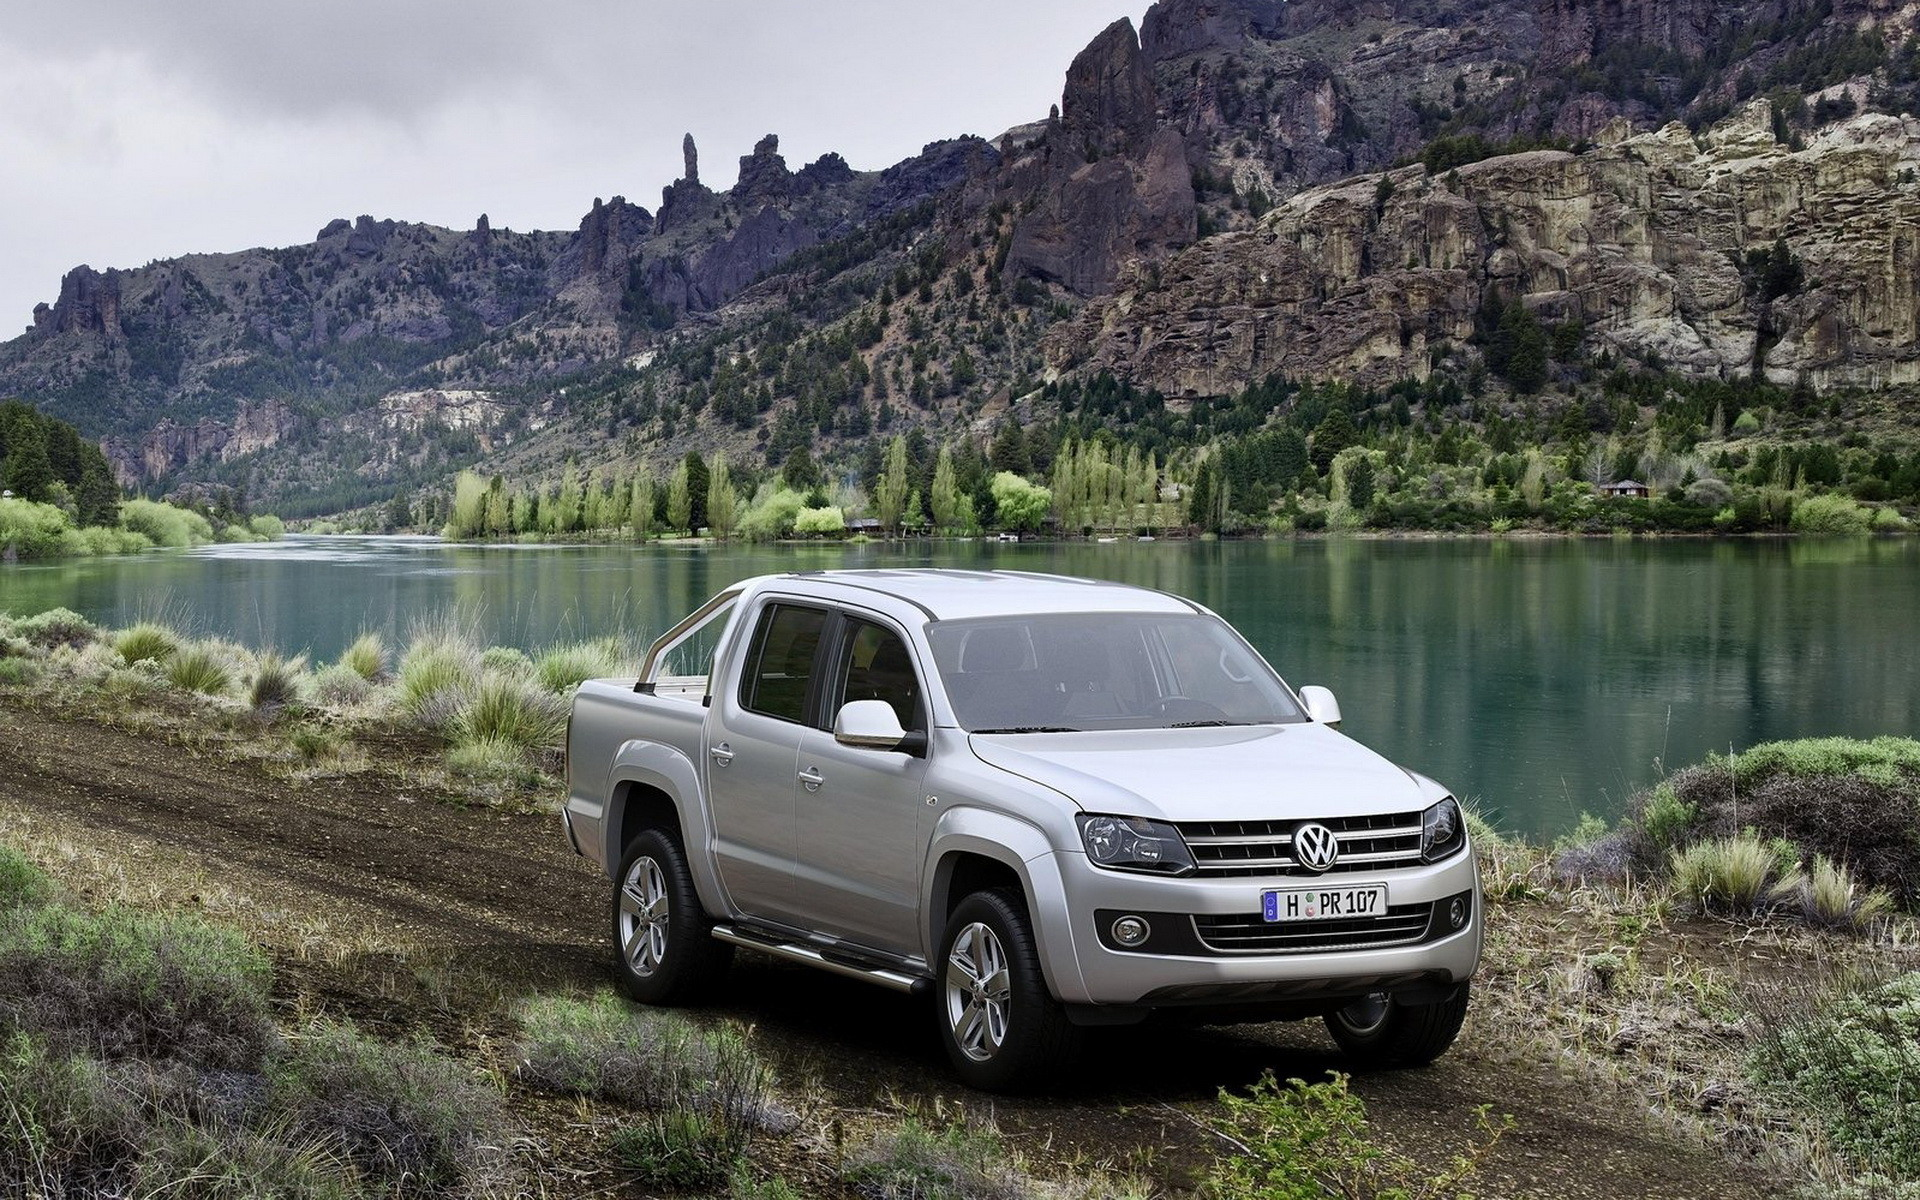 volkswagen, auto, screensaver, background, amarok, pictures, wallpaper